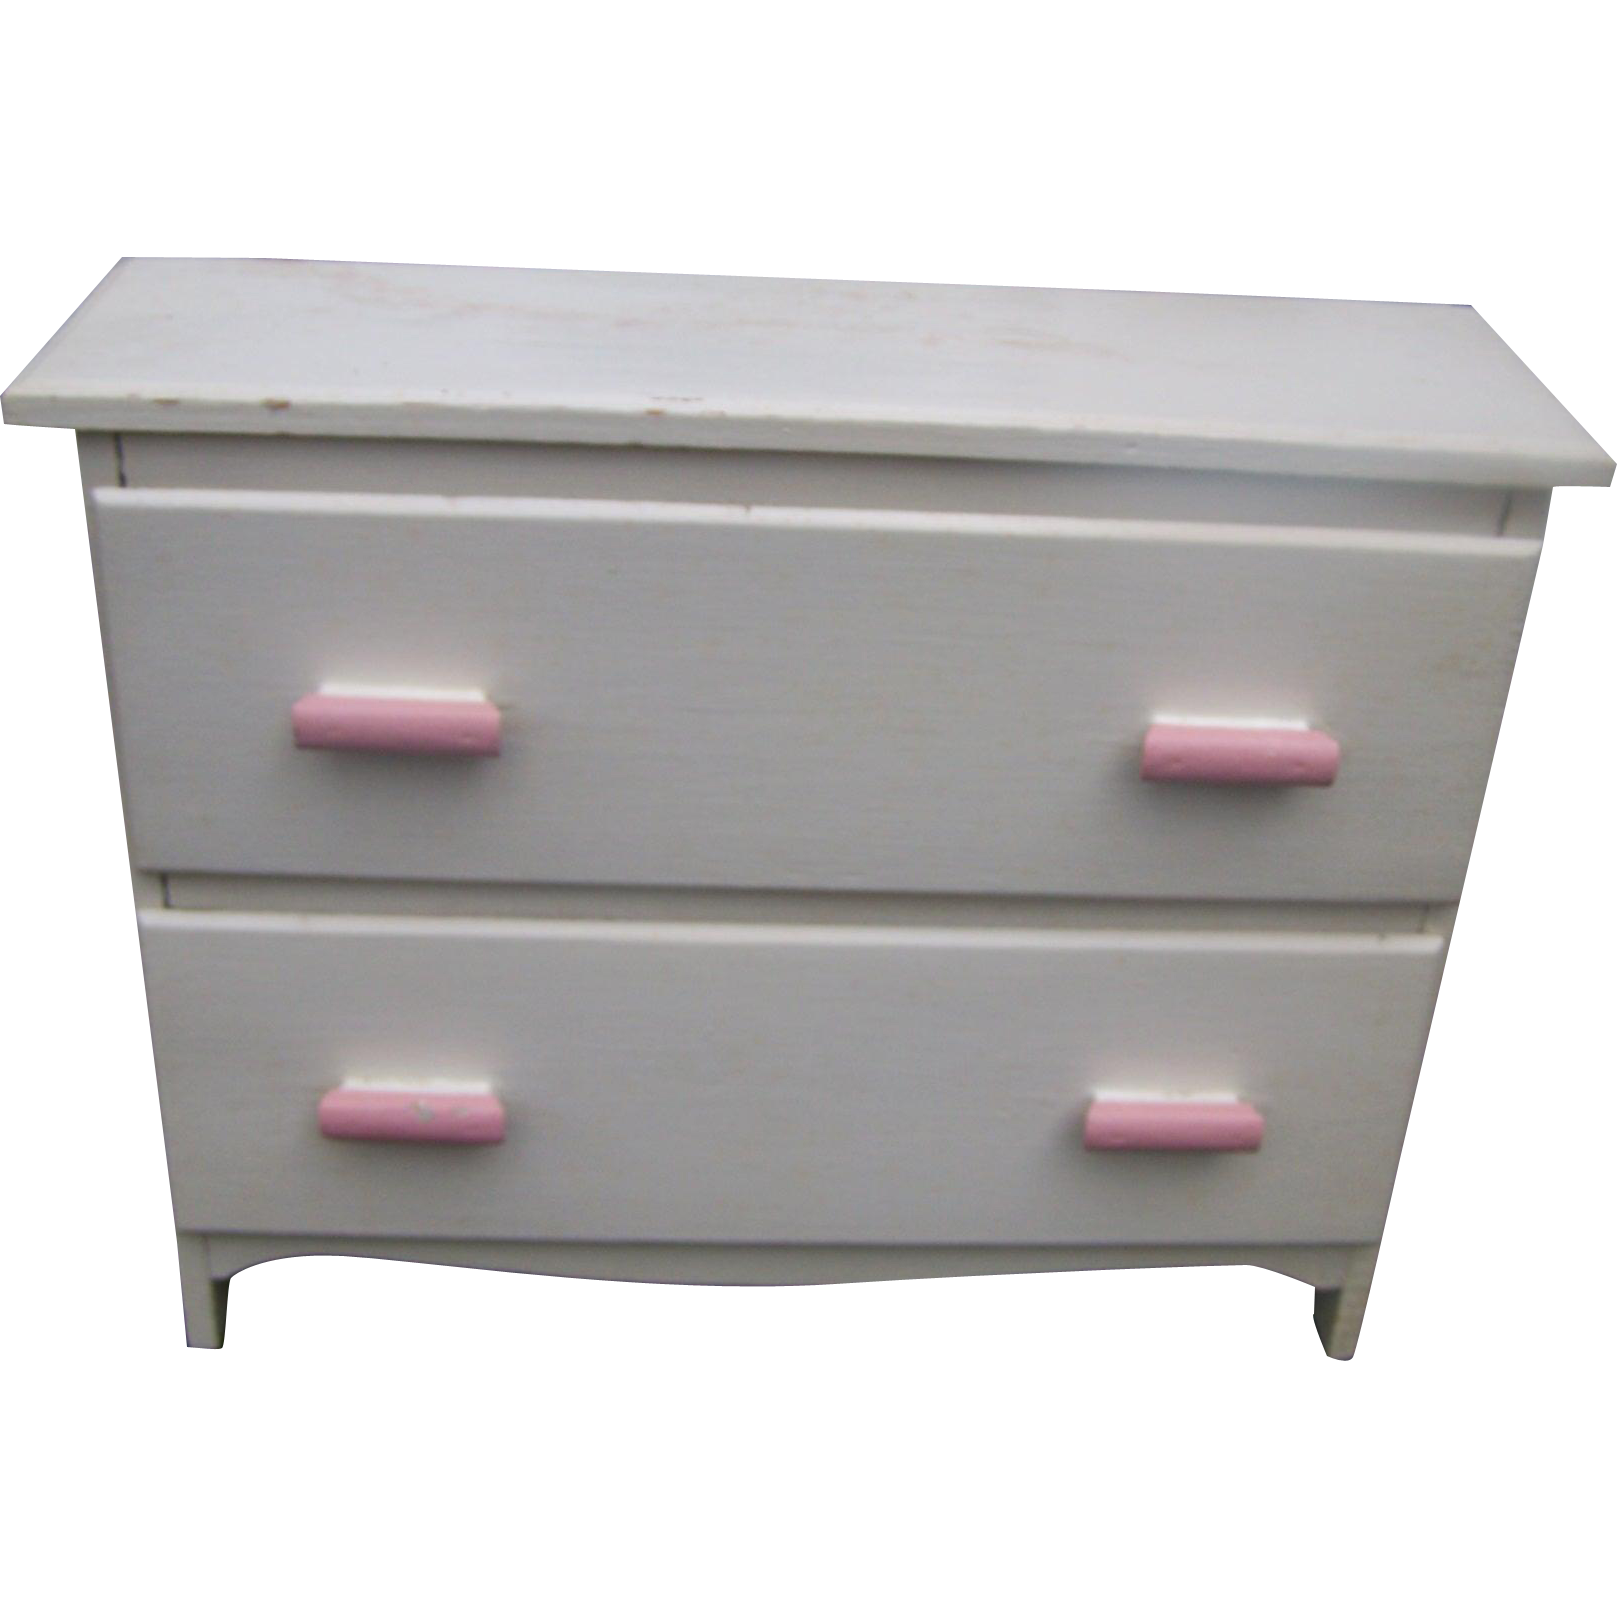 Wooden Hand Crafted Painted Dresser For Home Decor Accent Display or Great for Storage Prop or Toy